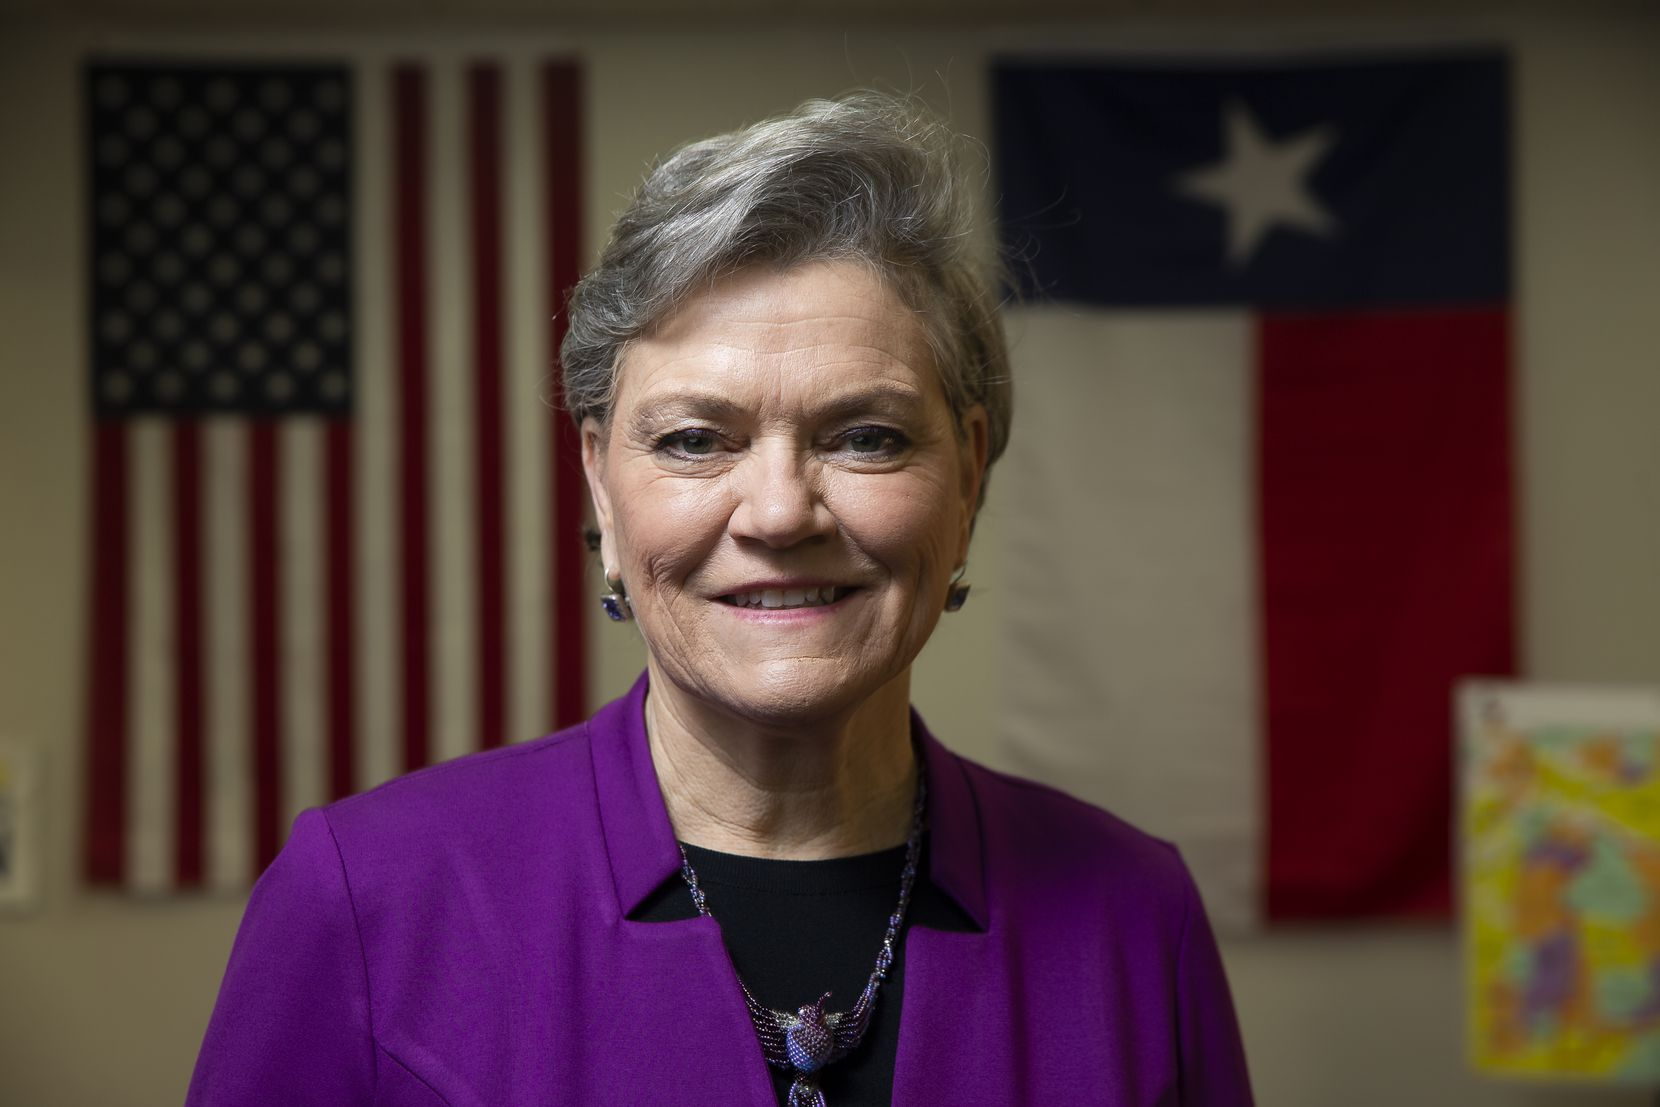 Kim Olson, a Democratic candidate for the 24th Congressional District of Texas, at her campaign office in Euless.